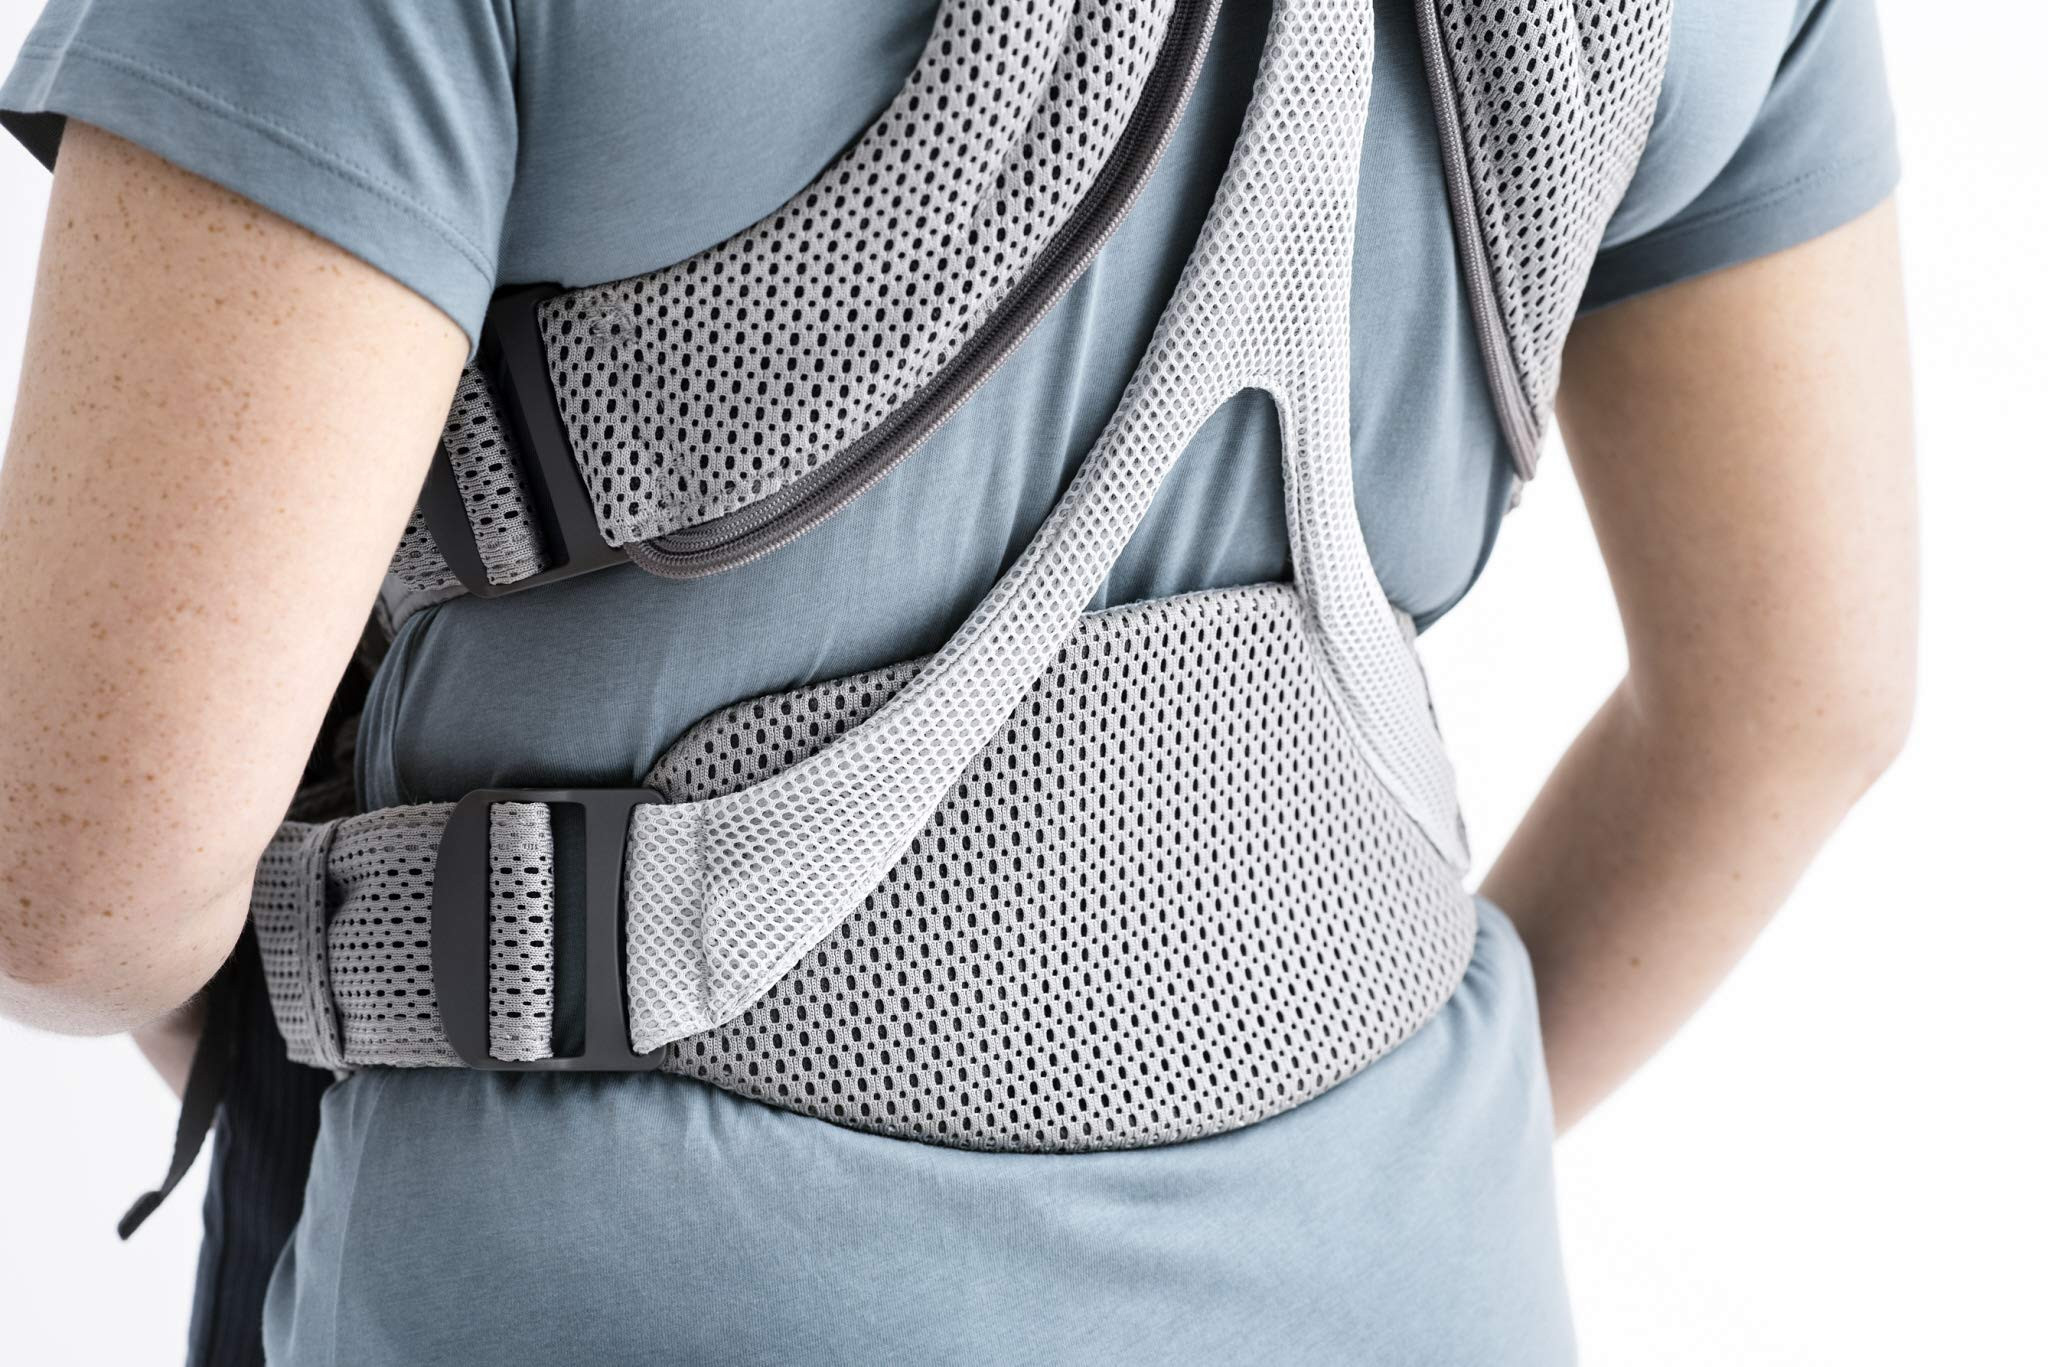 BABYBJÖRN Baby Carrier Move, 3D Mesh, Grey Baby Bjorn Excellent comfort with built-in back support and waist belt Easy to put on and take off Soft and airy design in cool 3D mesh 3